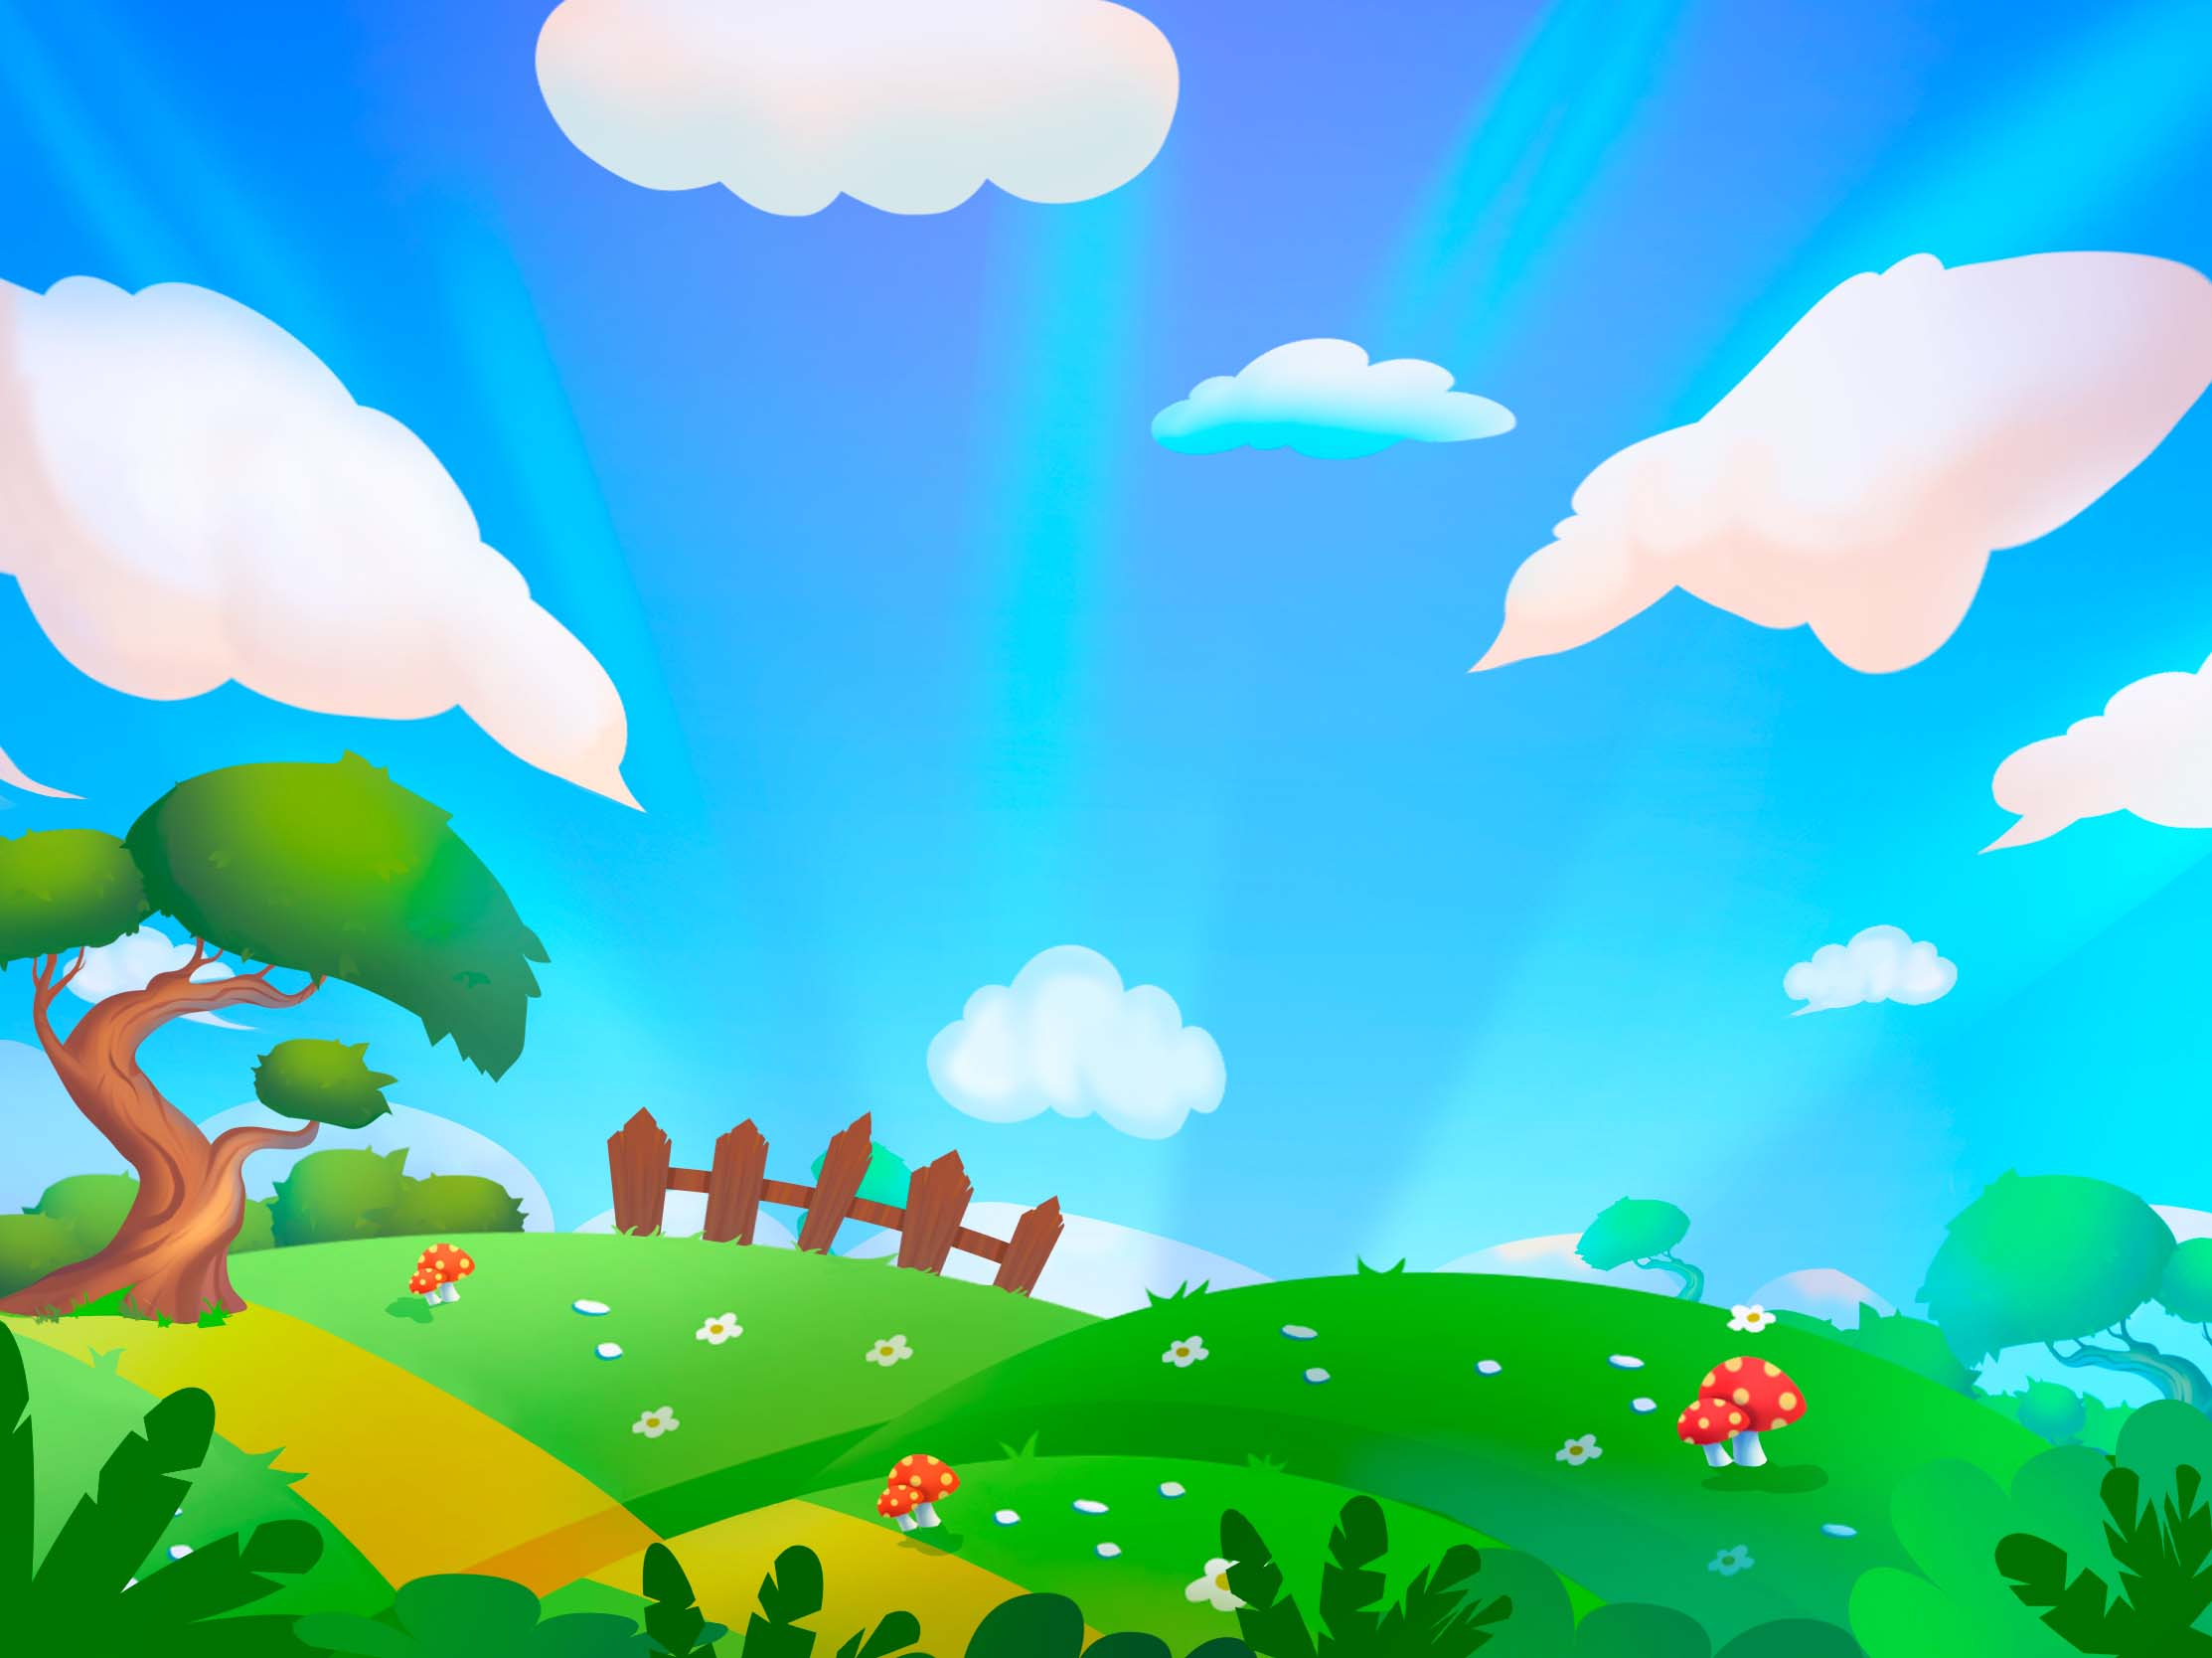 Background | 2D artist